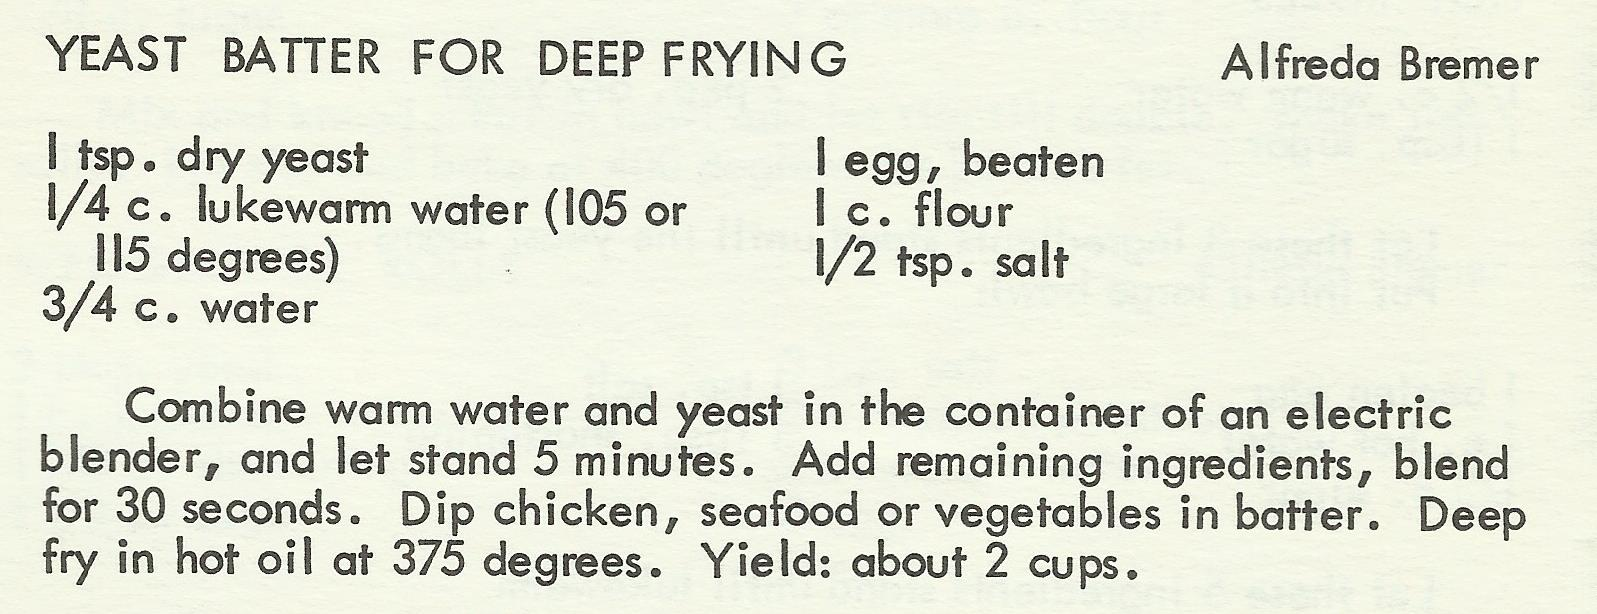 Yeast Batter For Deep Frying